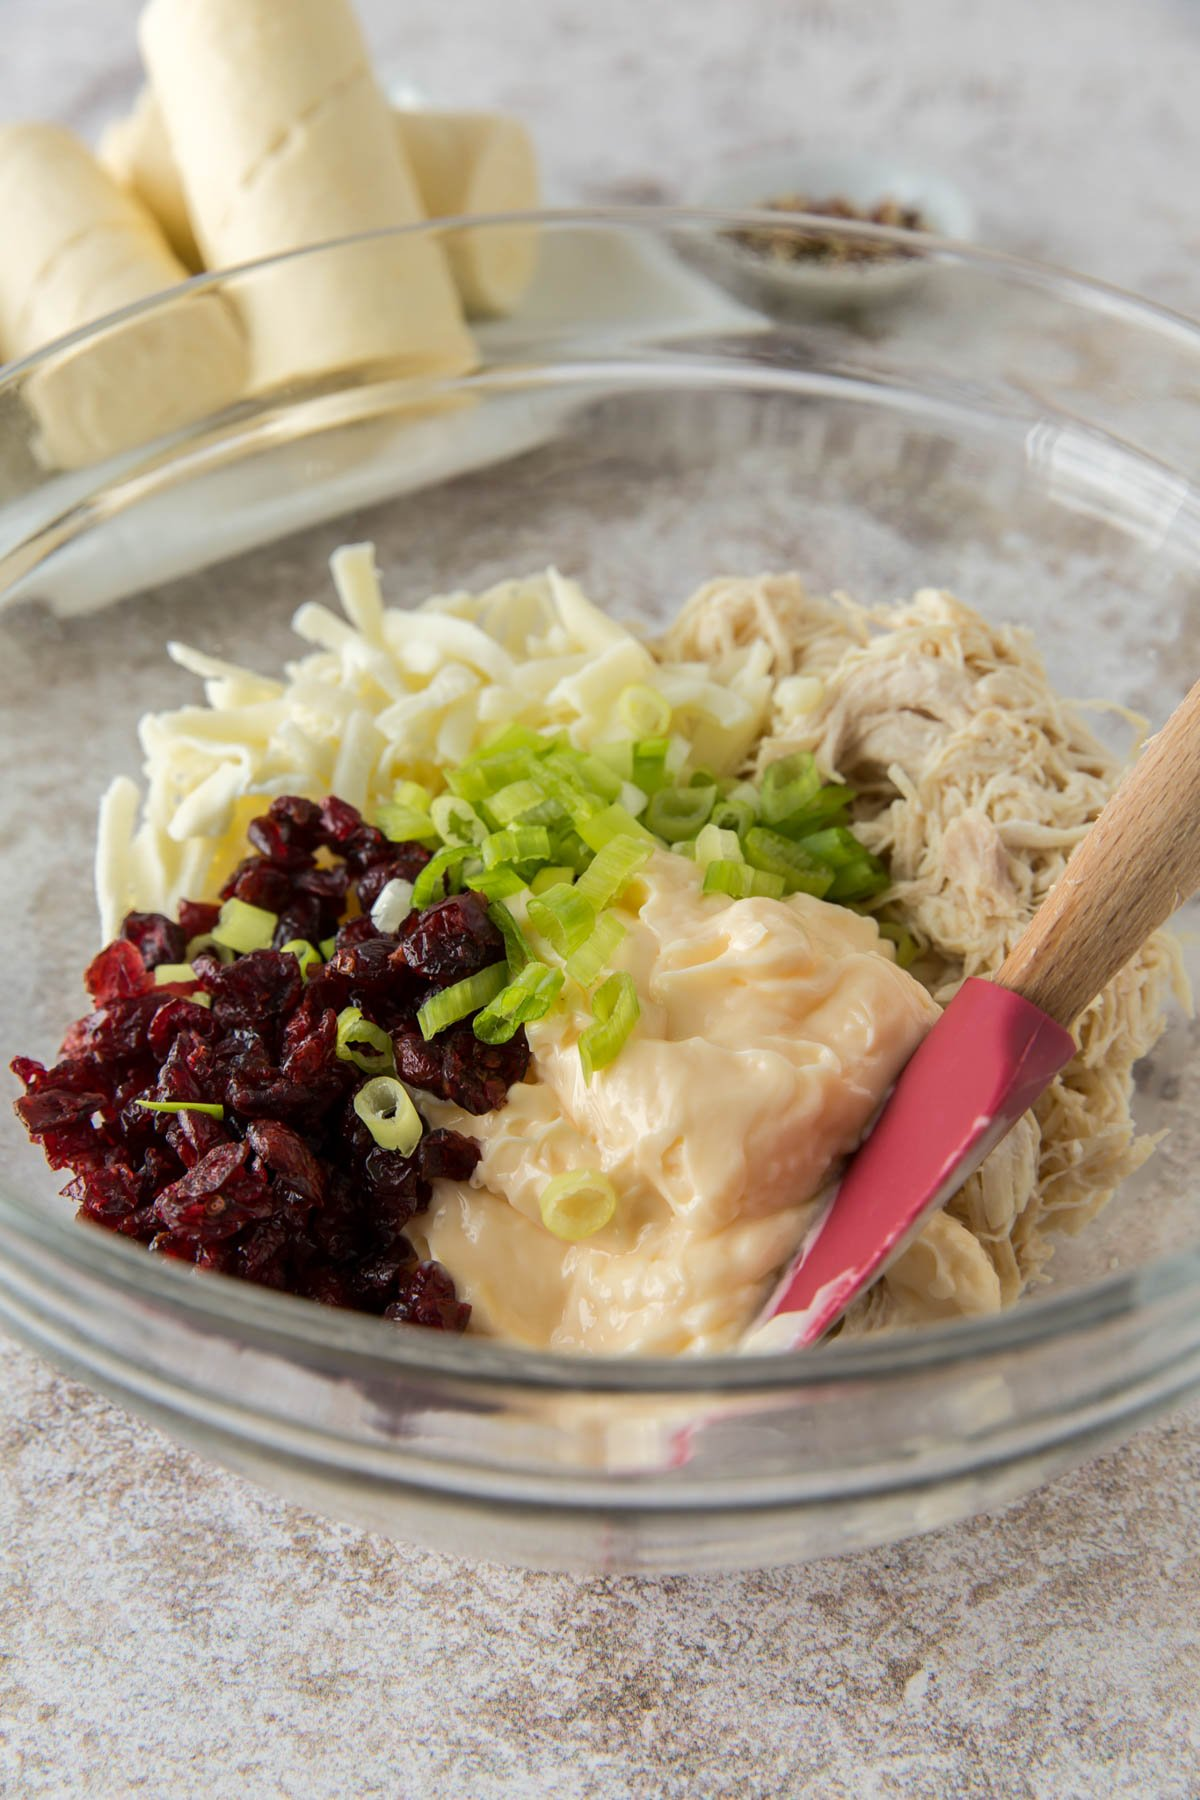 glass bowl, spatula, shredded chicken, mayo, cranberries, cheese, green onion, crescent roll dough